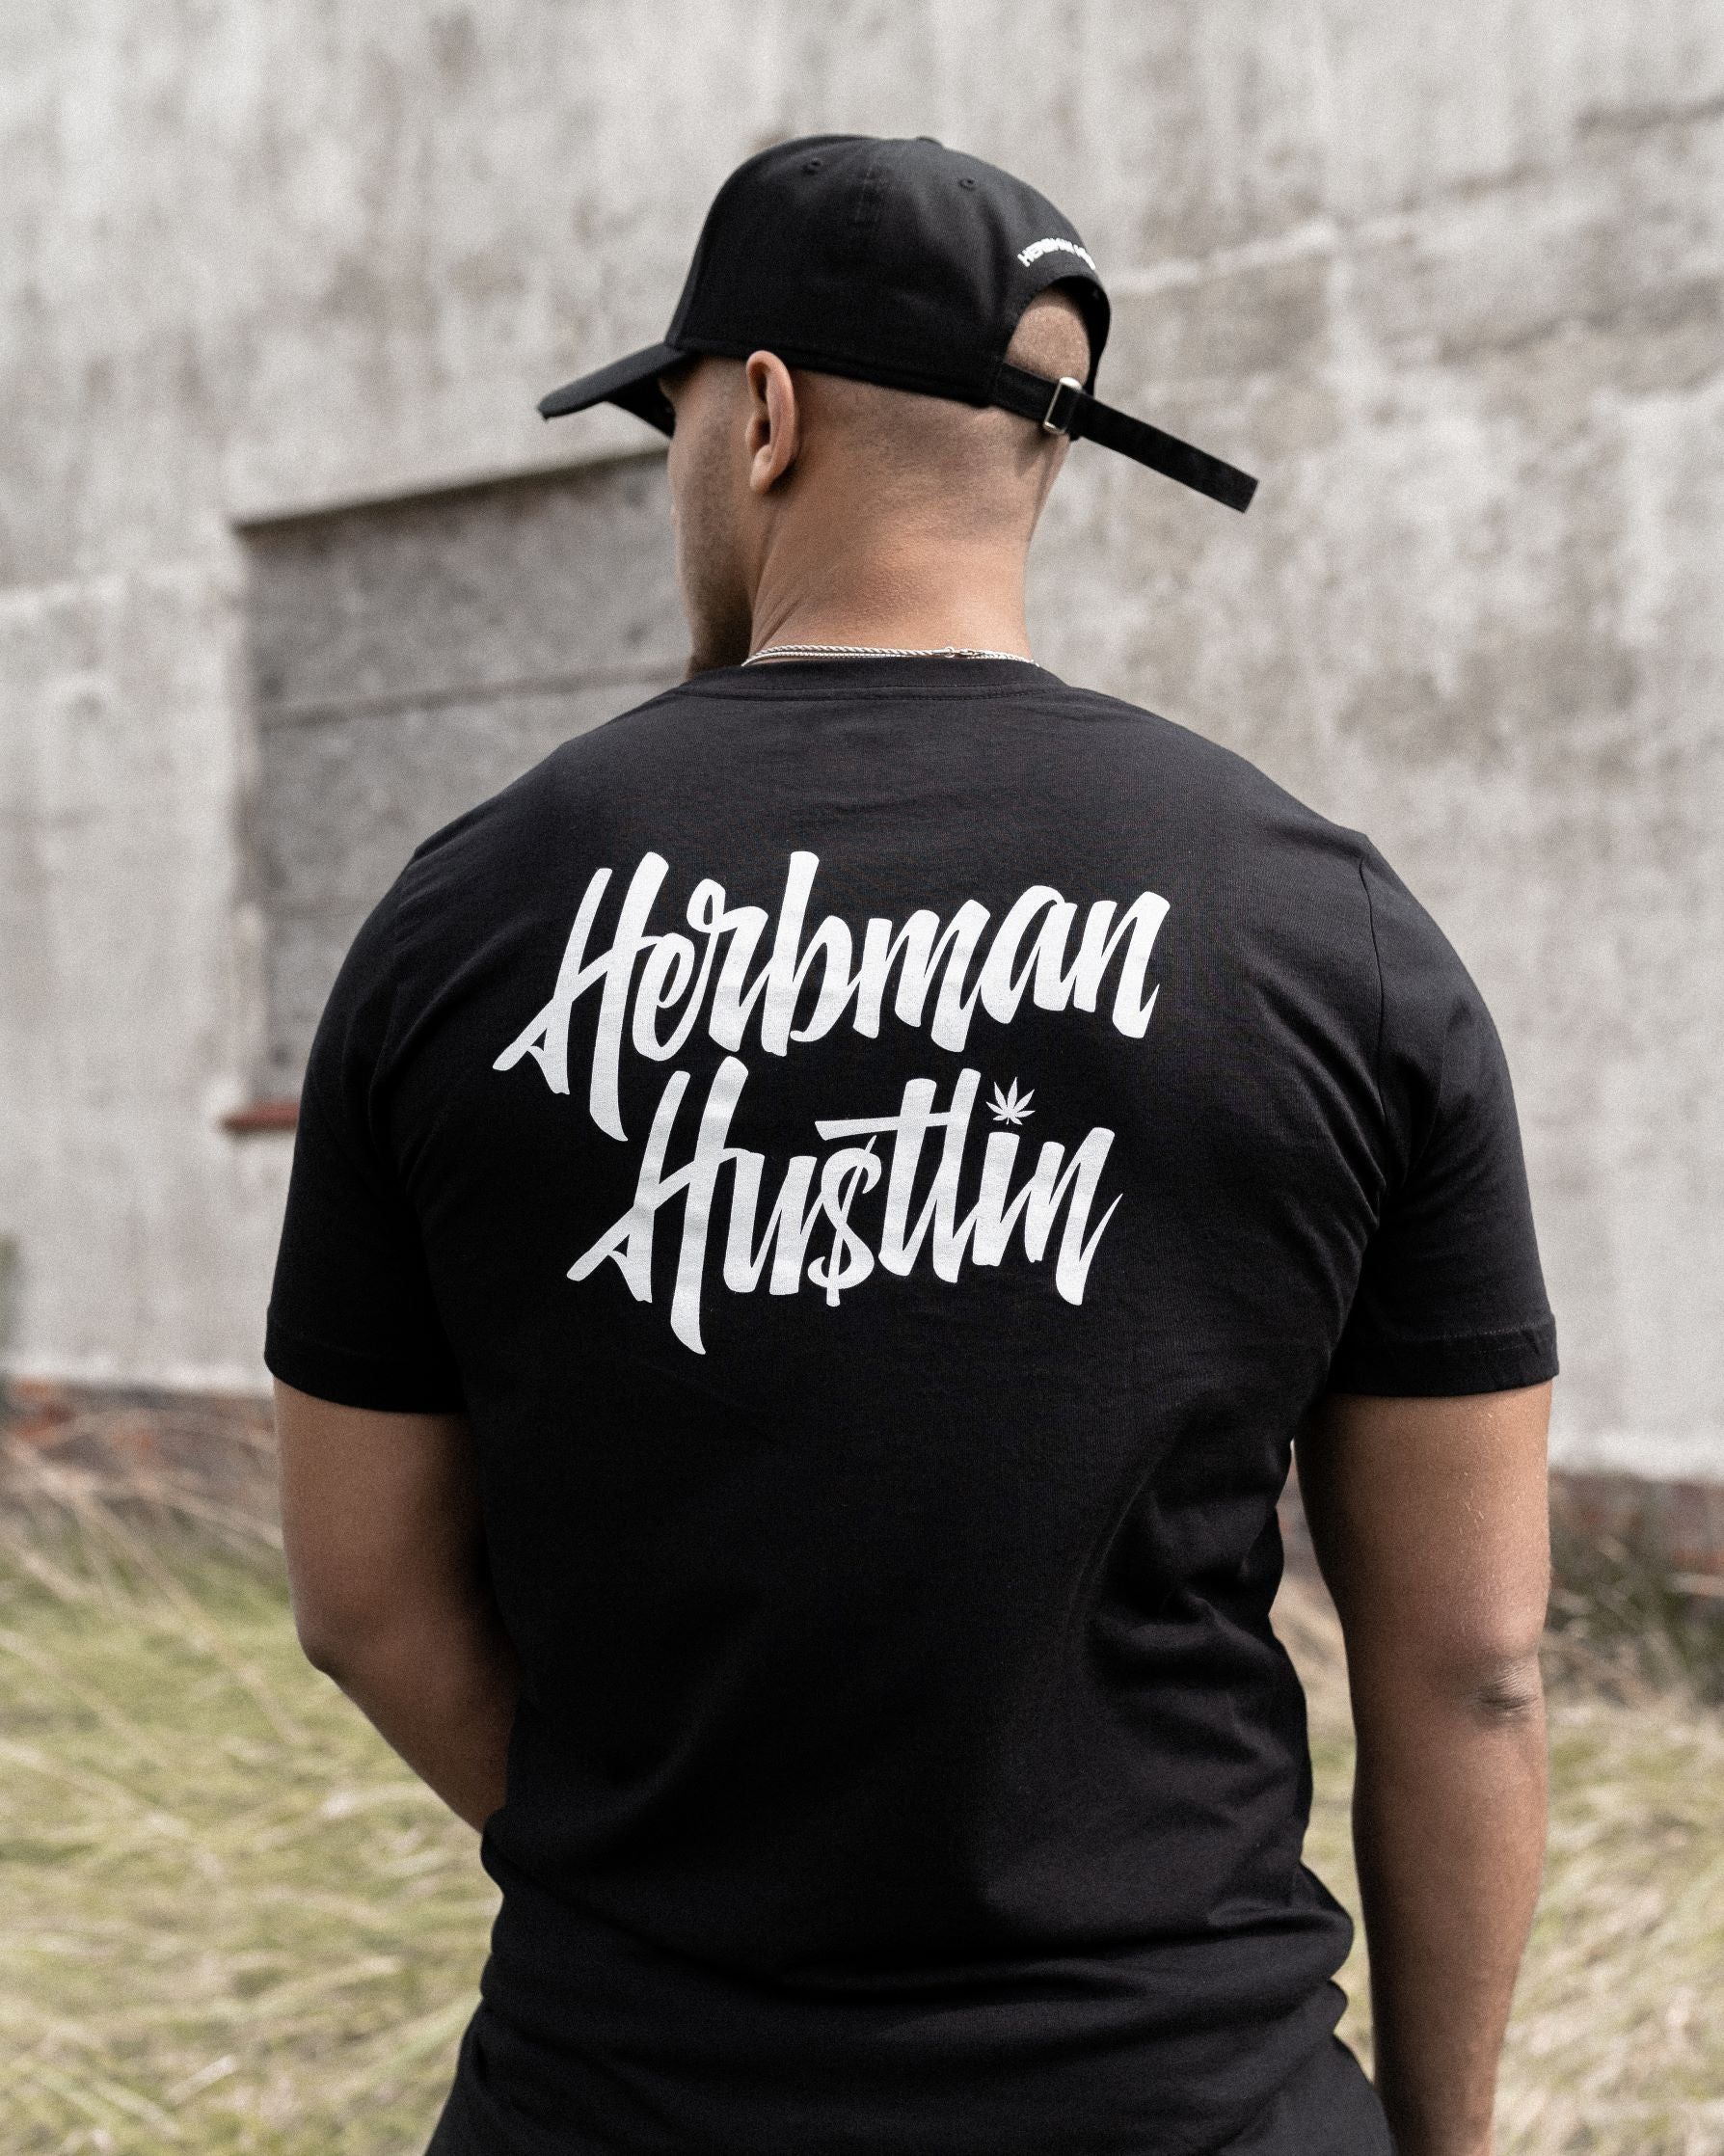 Herbman Hustlin Script Back Print Tee - Black/White - Back